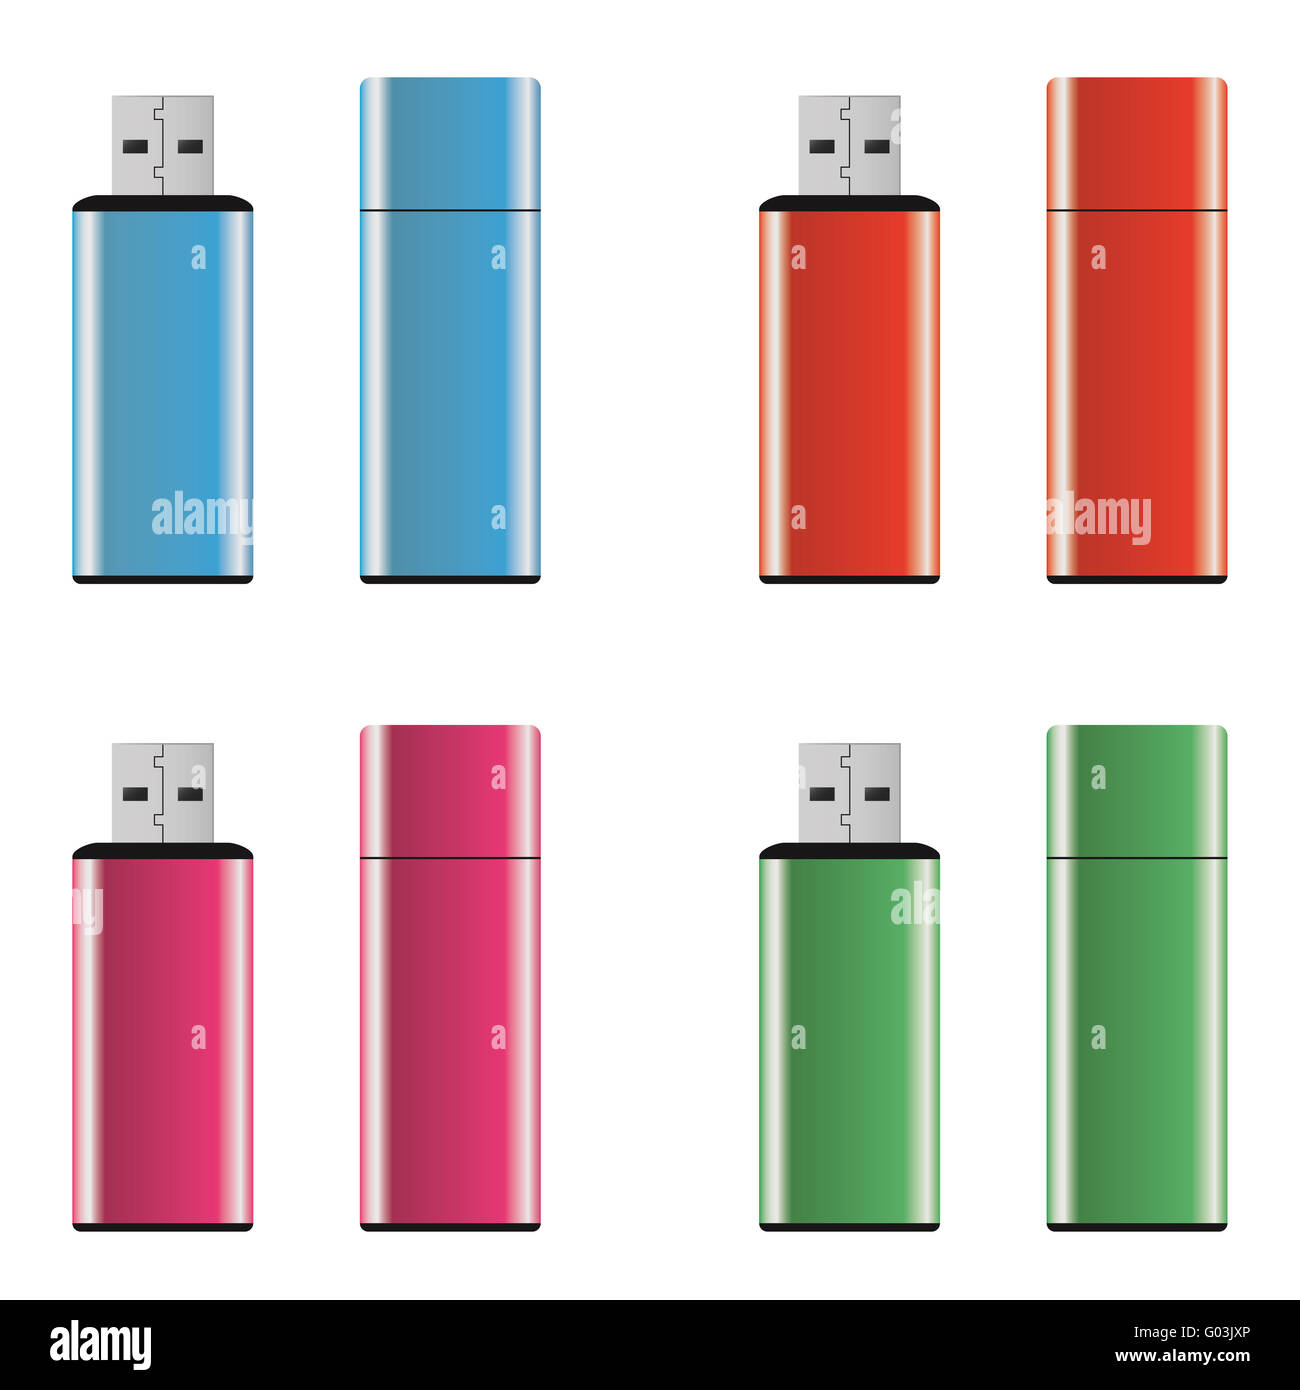 Colored USB pen drives - Stock Image